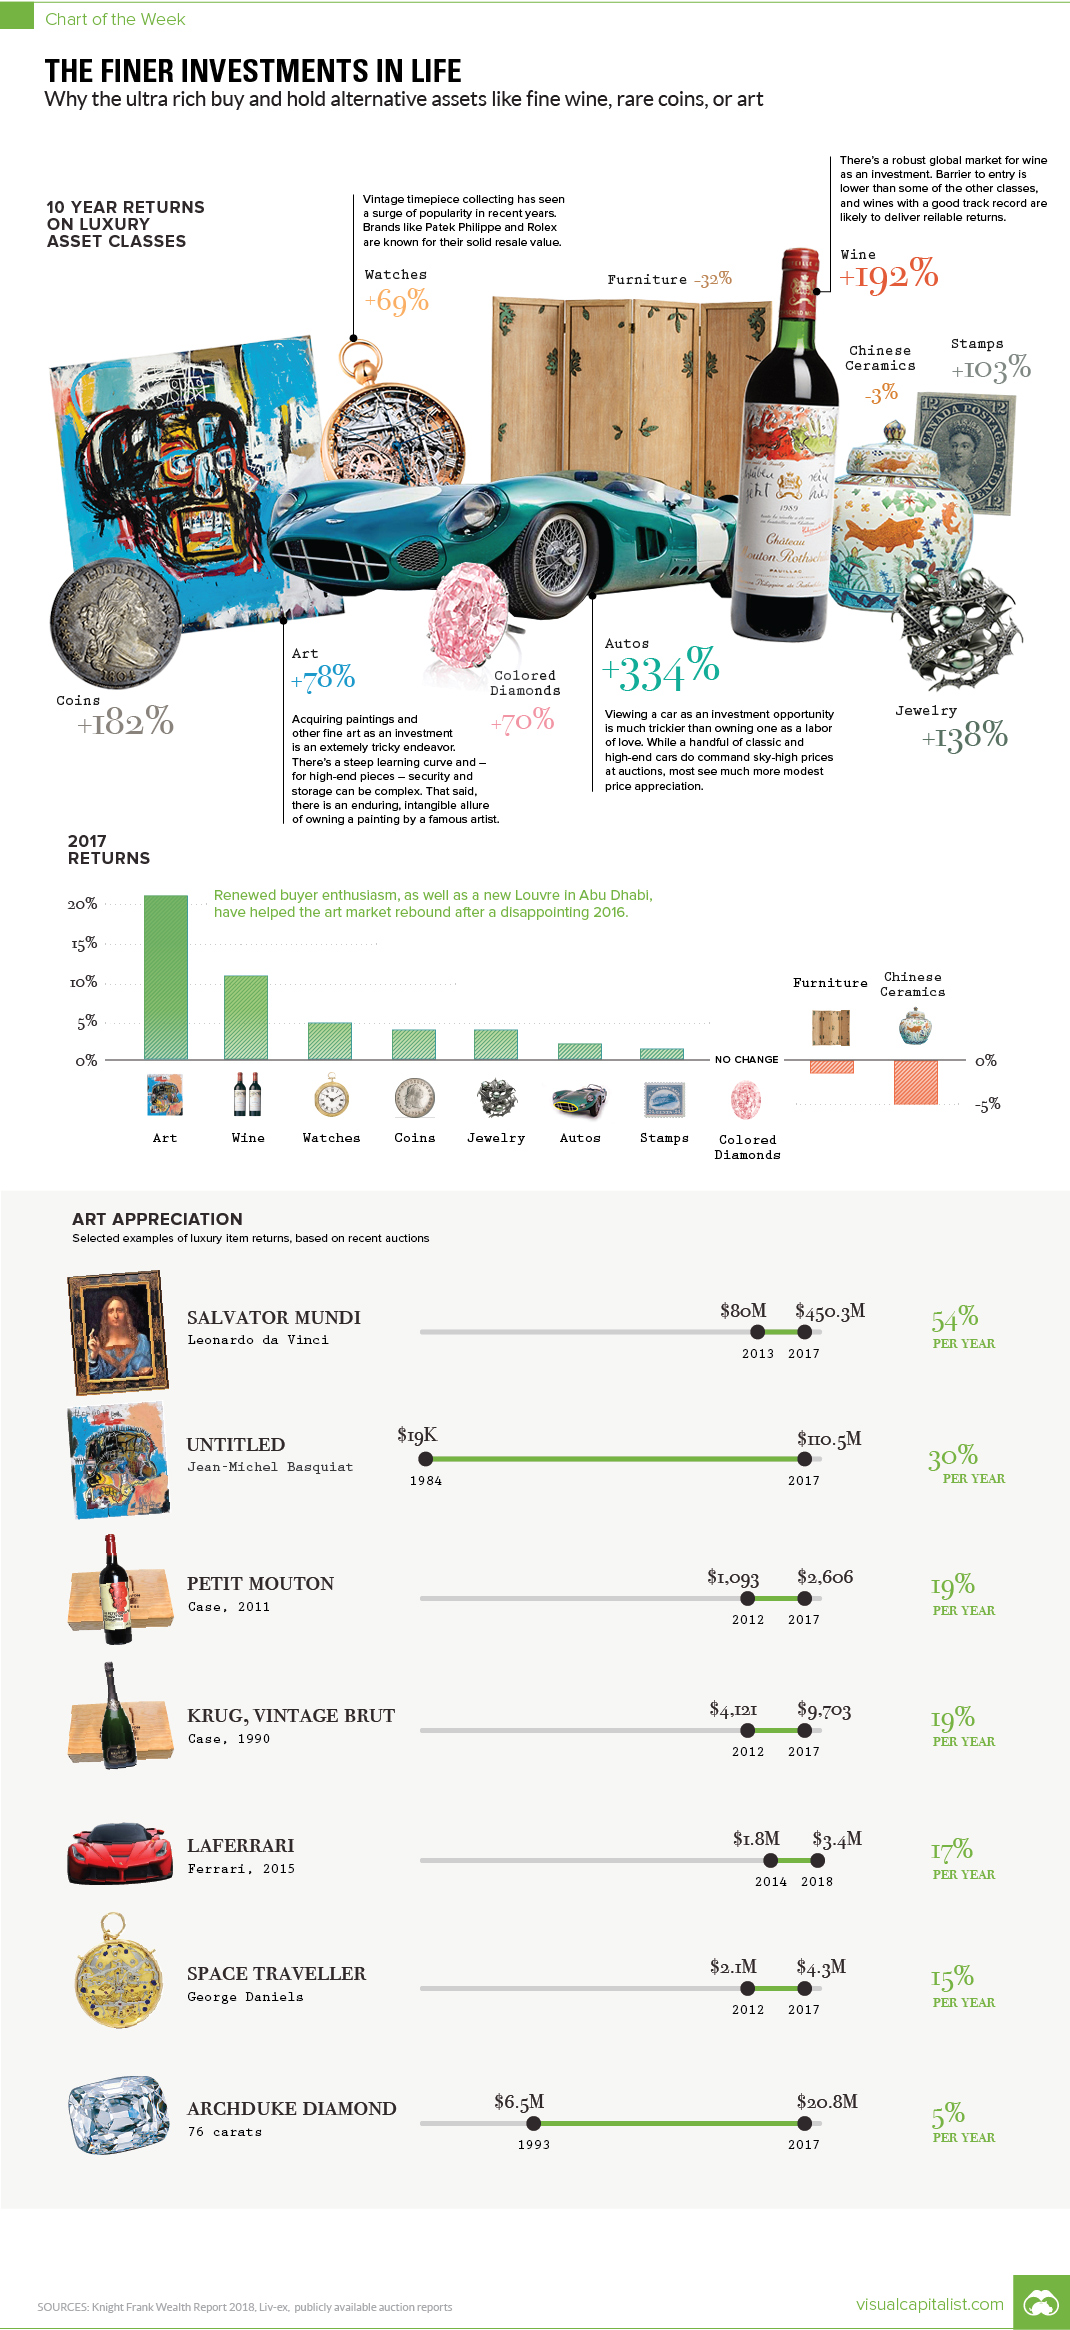 Chart: The Finer Investments in Life